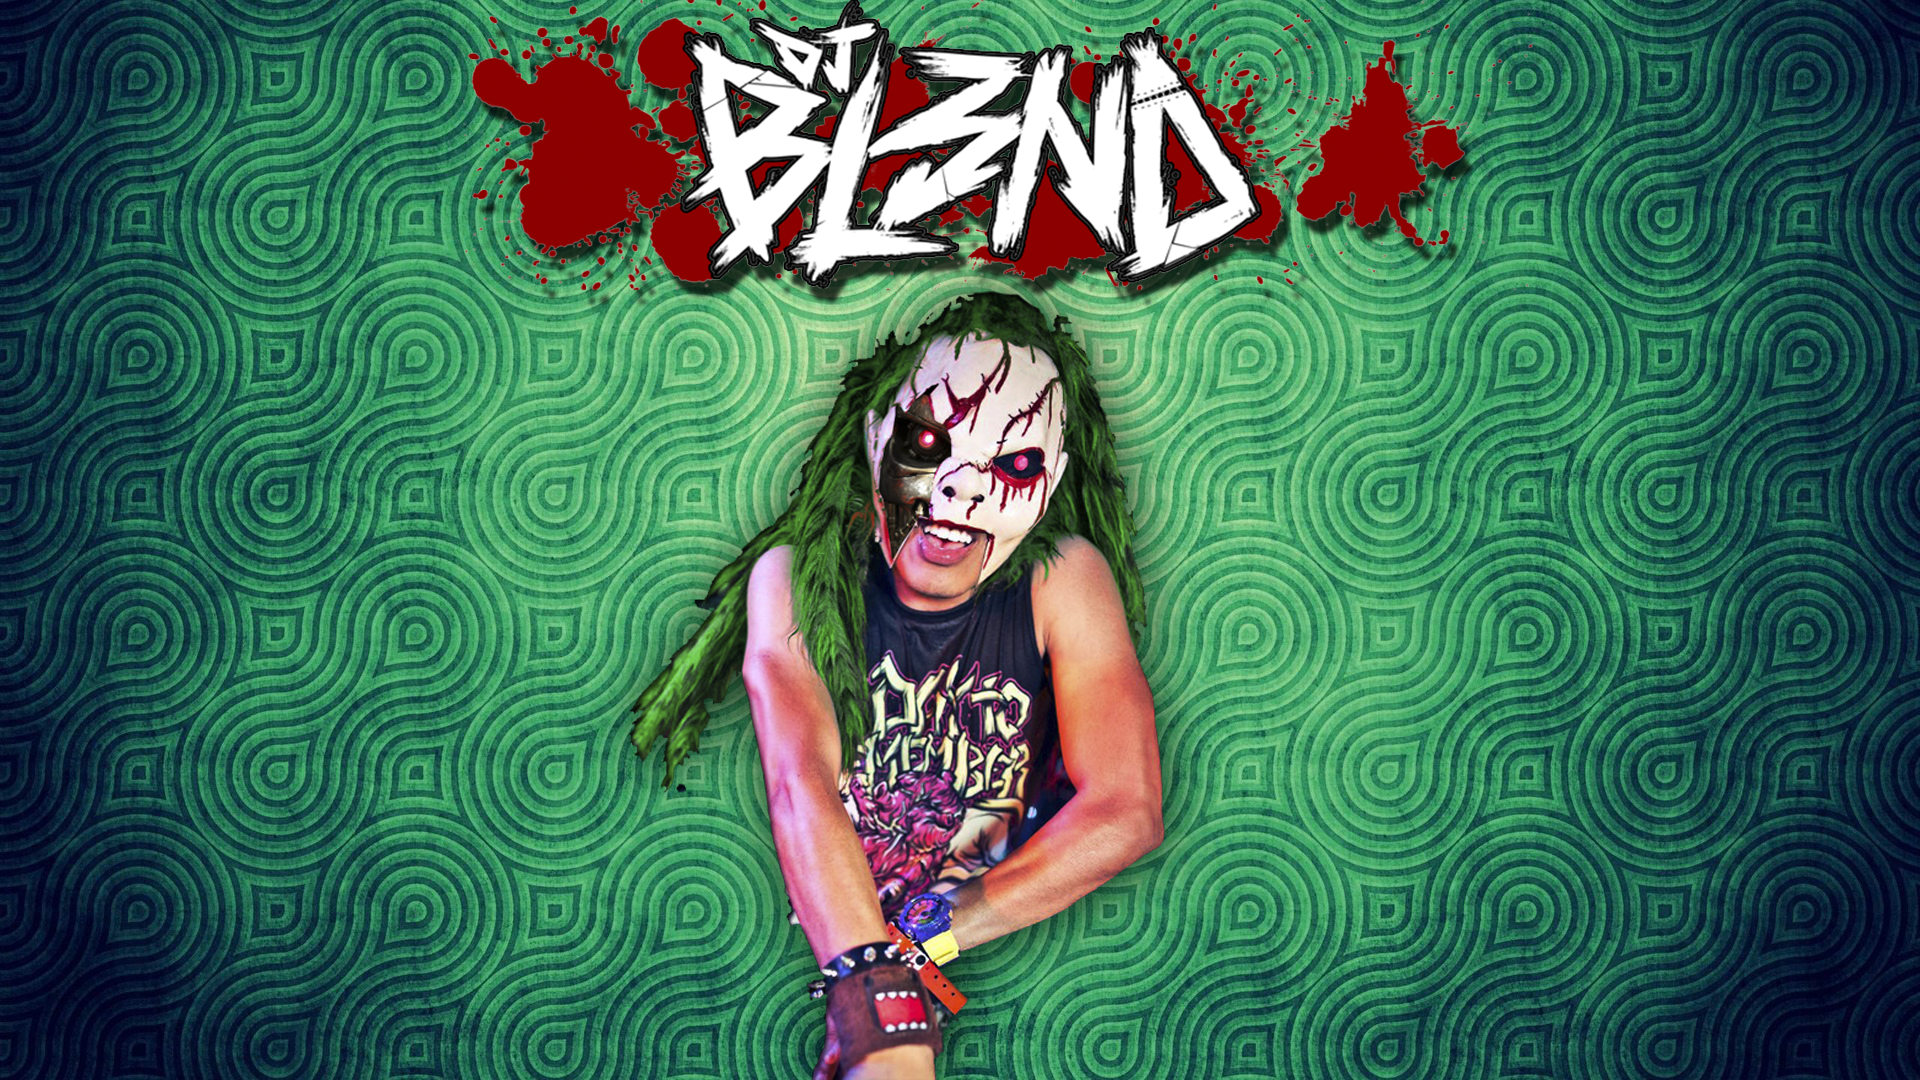 DJ BL3ND X_O Full HD Wallpaper And Background Image